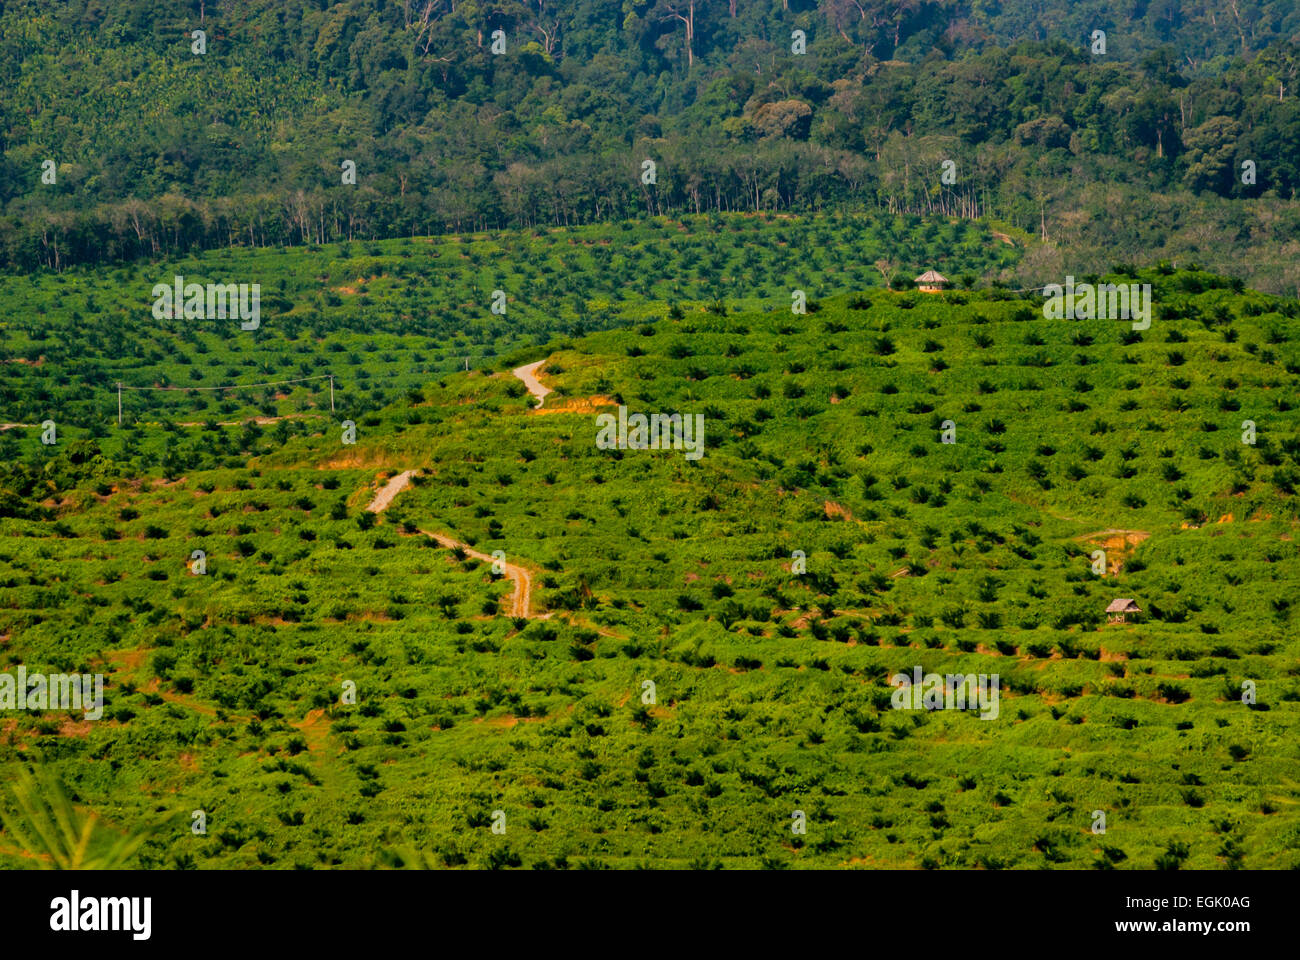 Newly planted oil palm trees at a palm plantation in North Sumatra province, Indonesia. - Stock Image